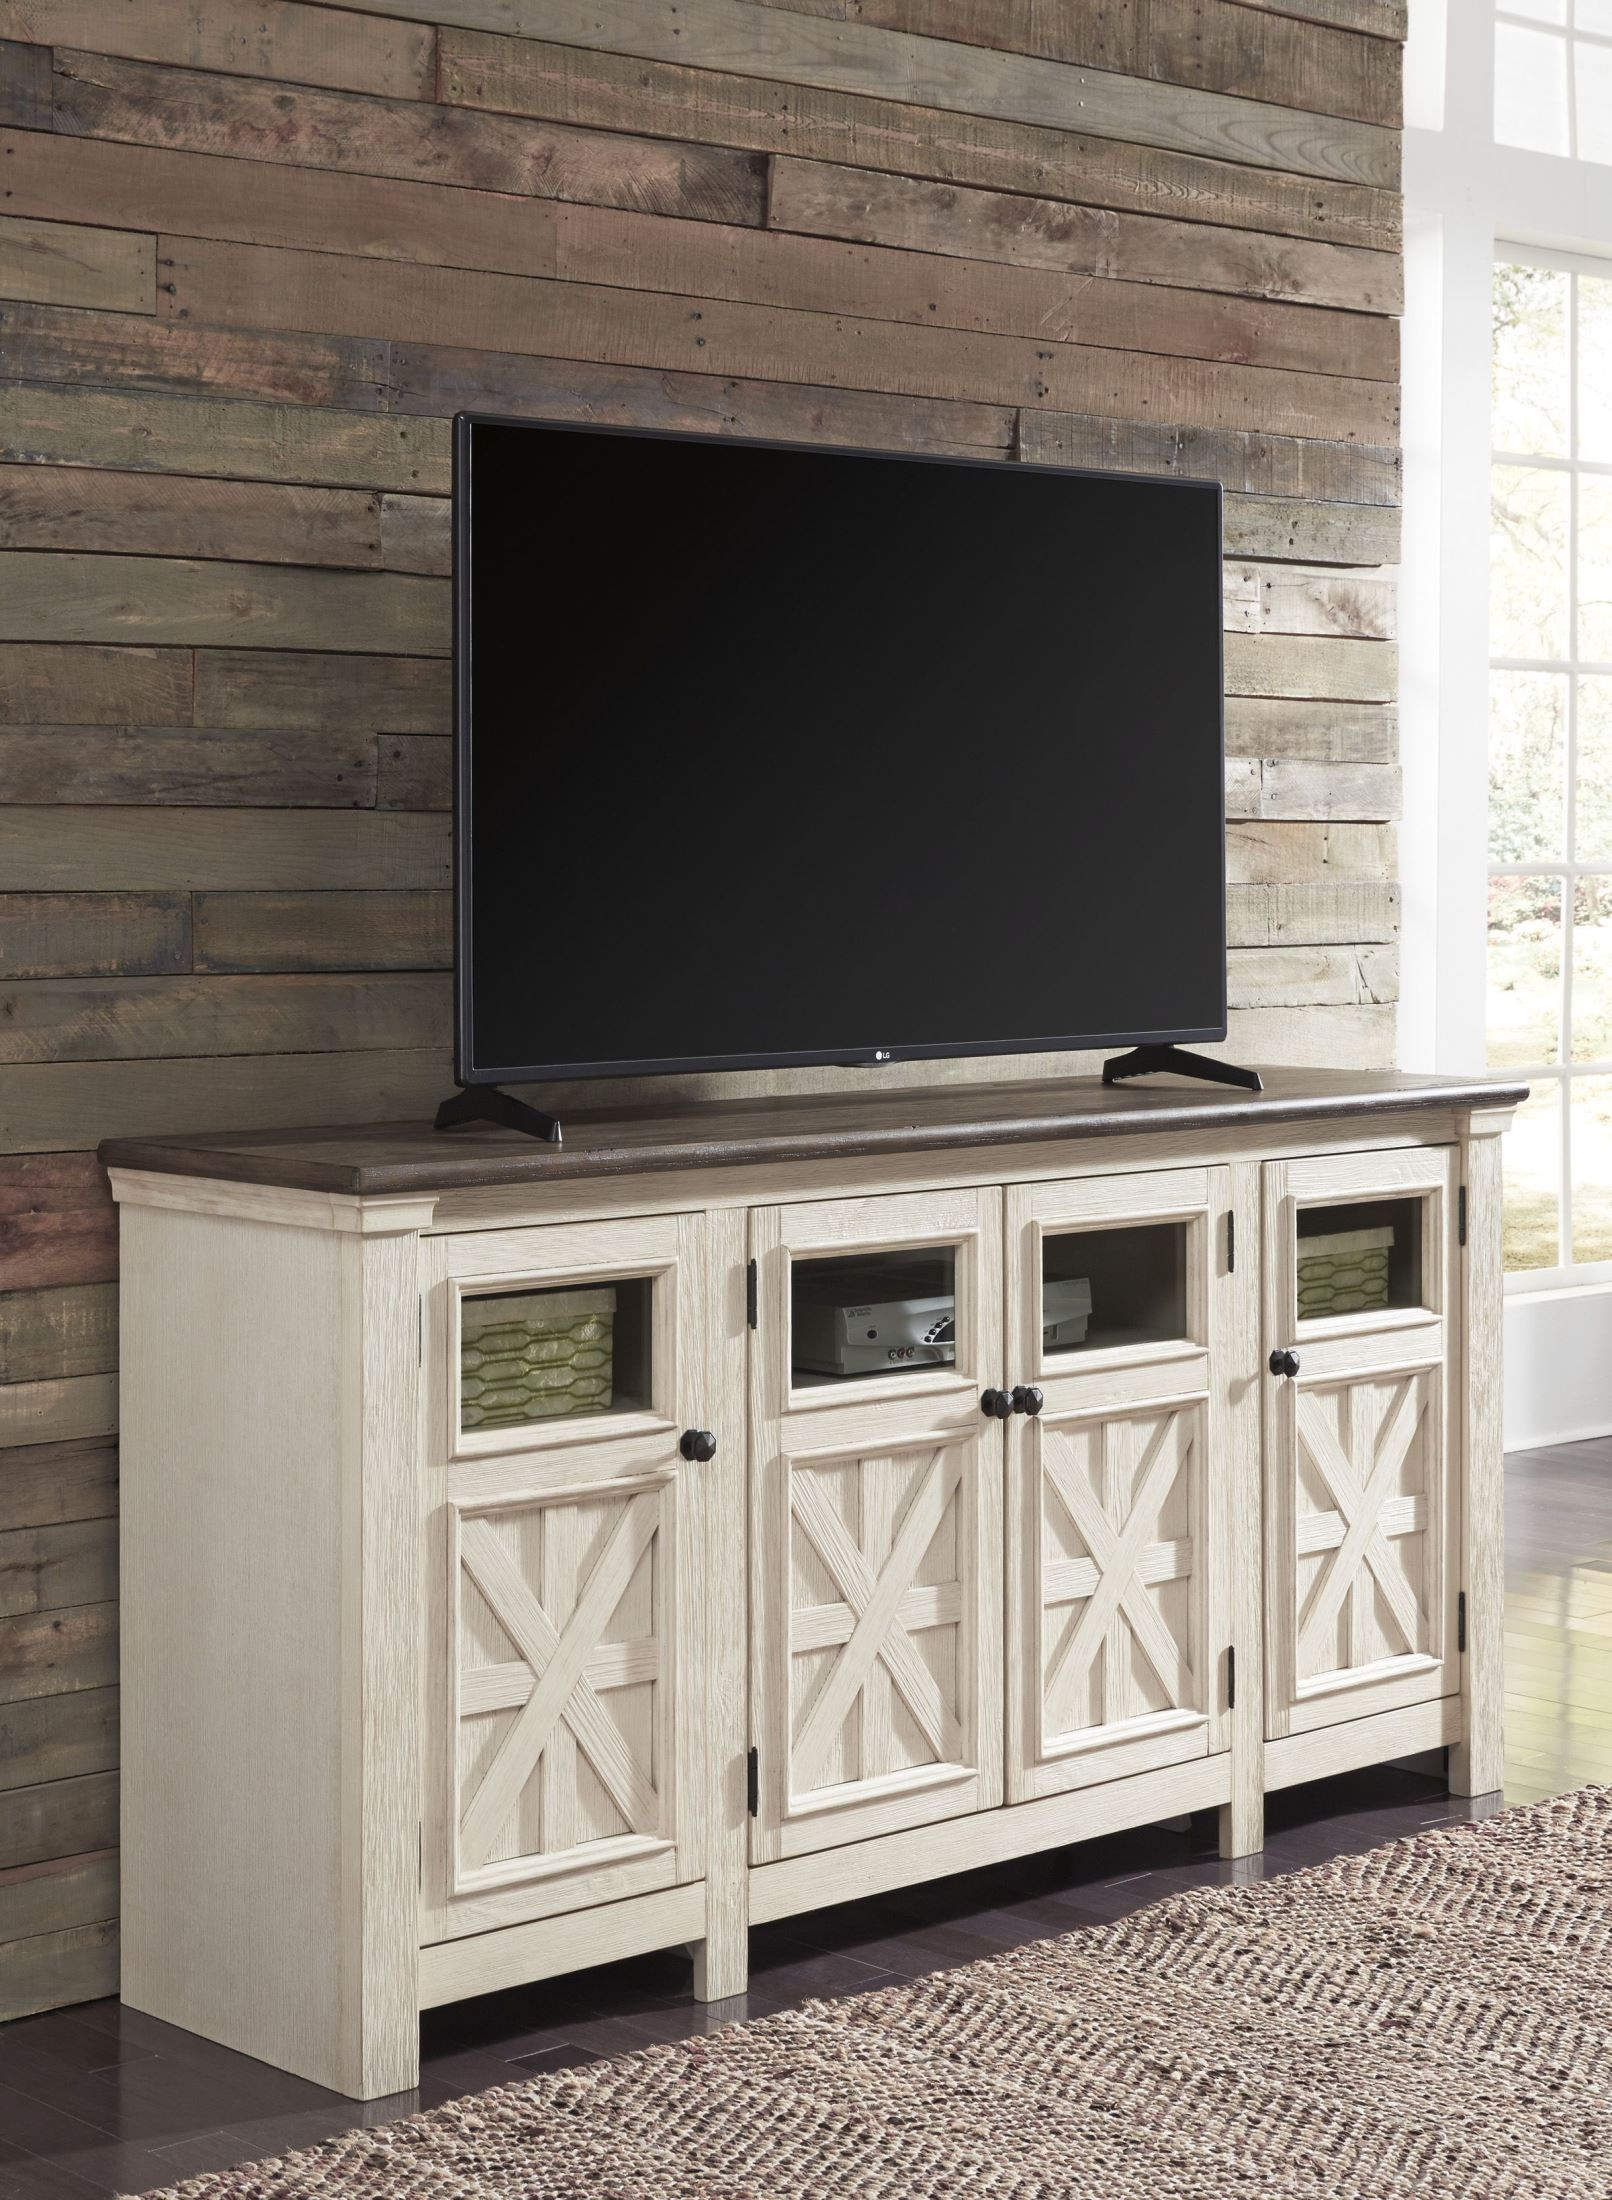 Bolanburg weathered gray extra large tv stand from ashley - Dresser as tv stand in living room ...